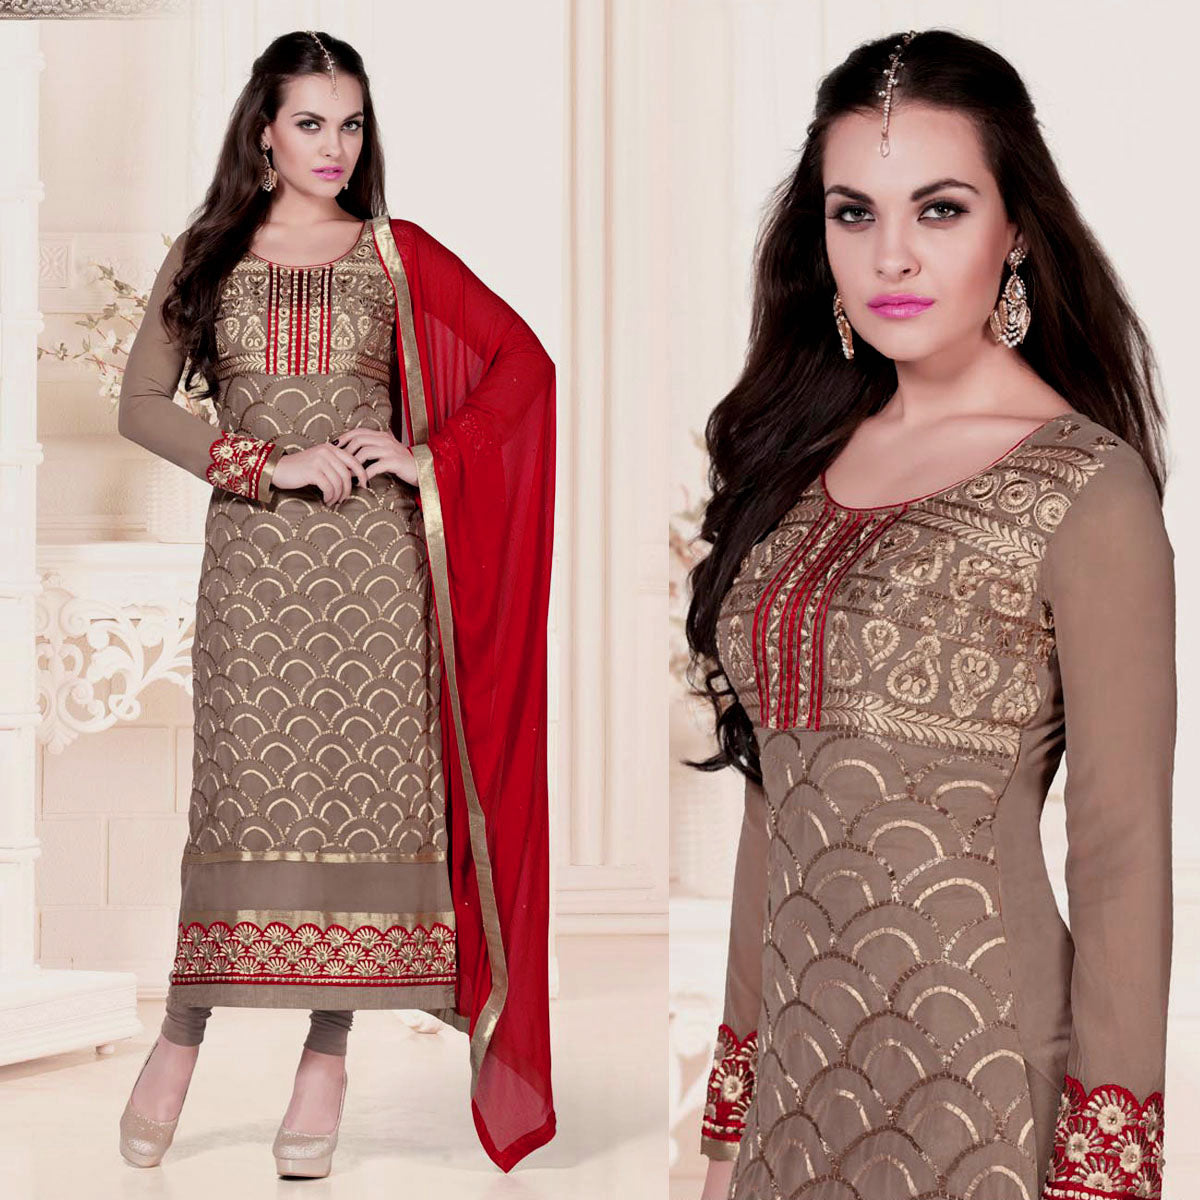 ROSE BROWN GEORGETTE UNSTITCHED LONG SALWAR KAMEEZ SUIT DRESS MATERIAL w HEAVY EMBR LADIES DEN